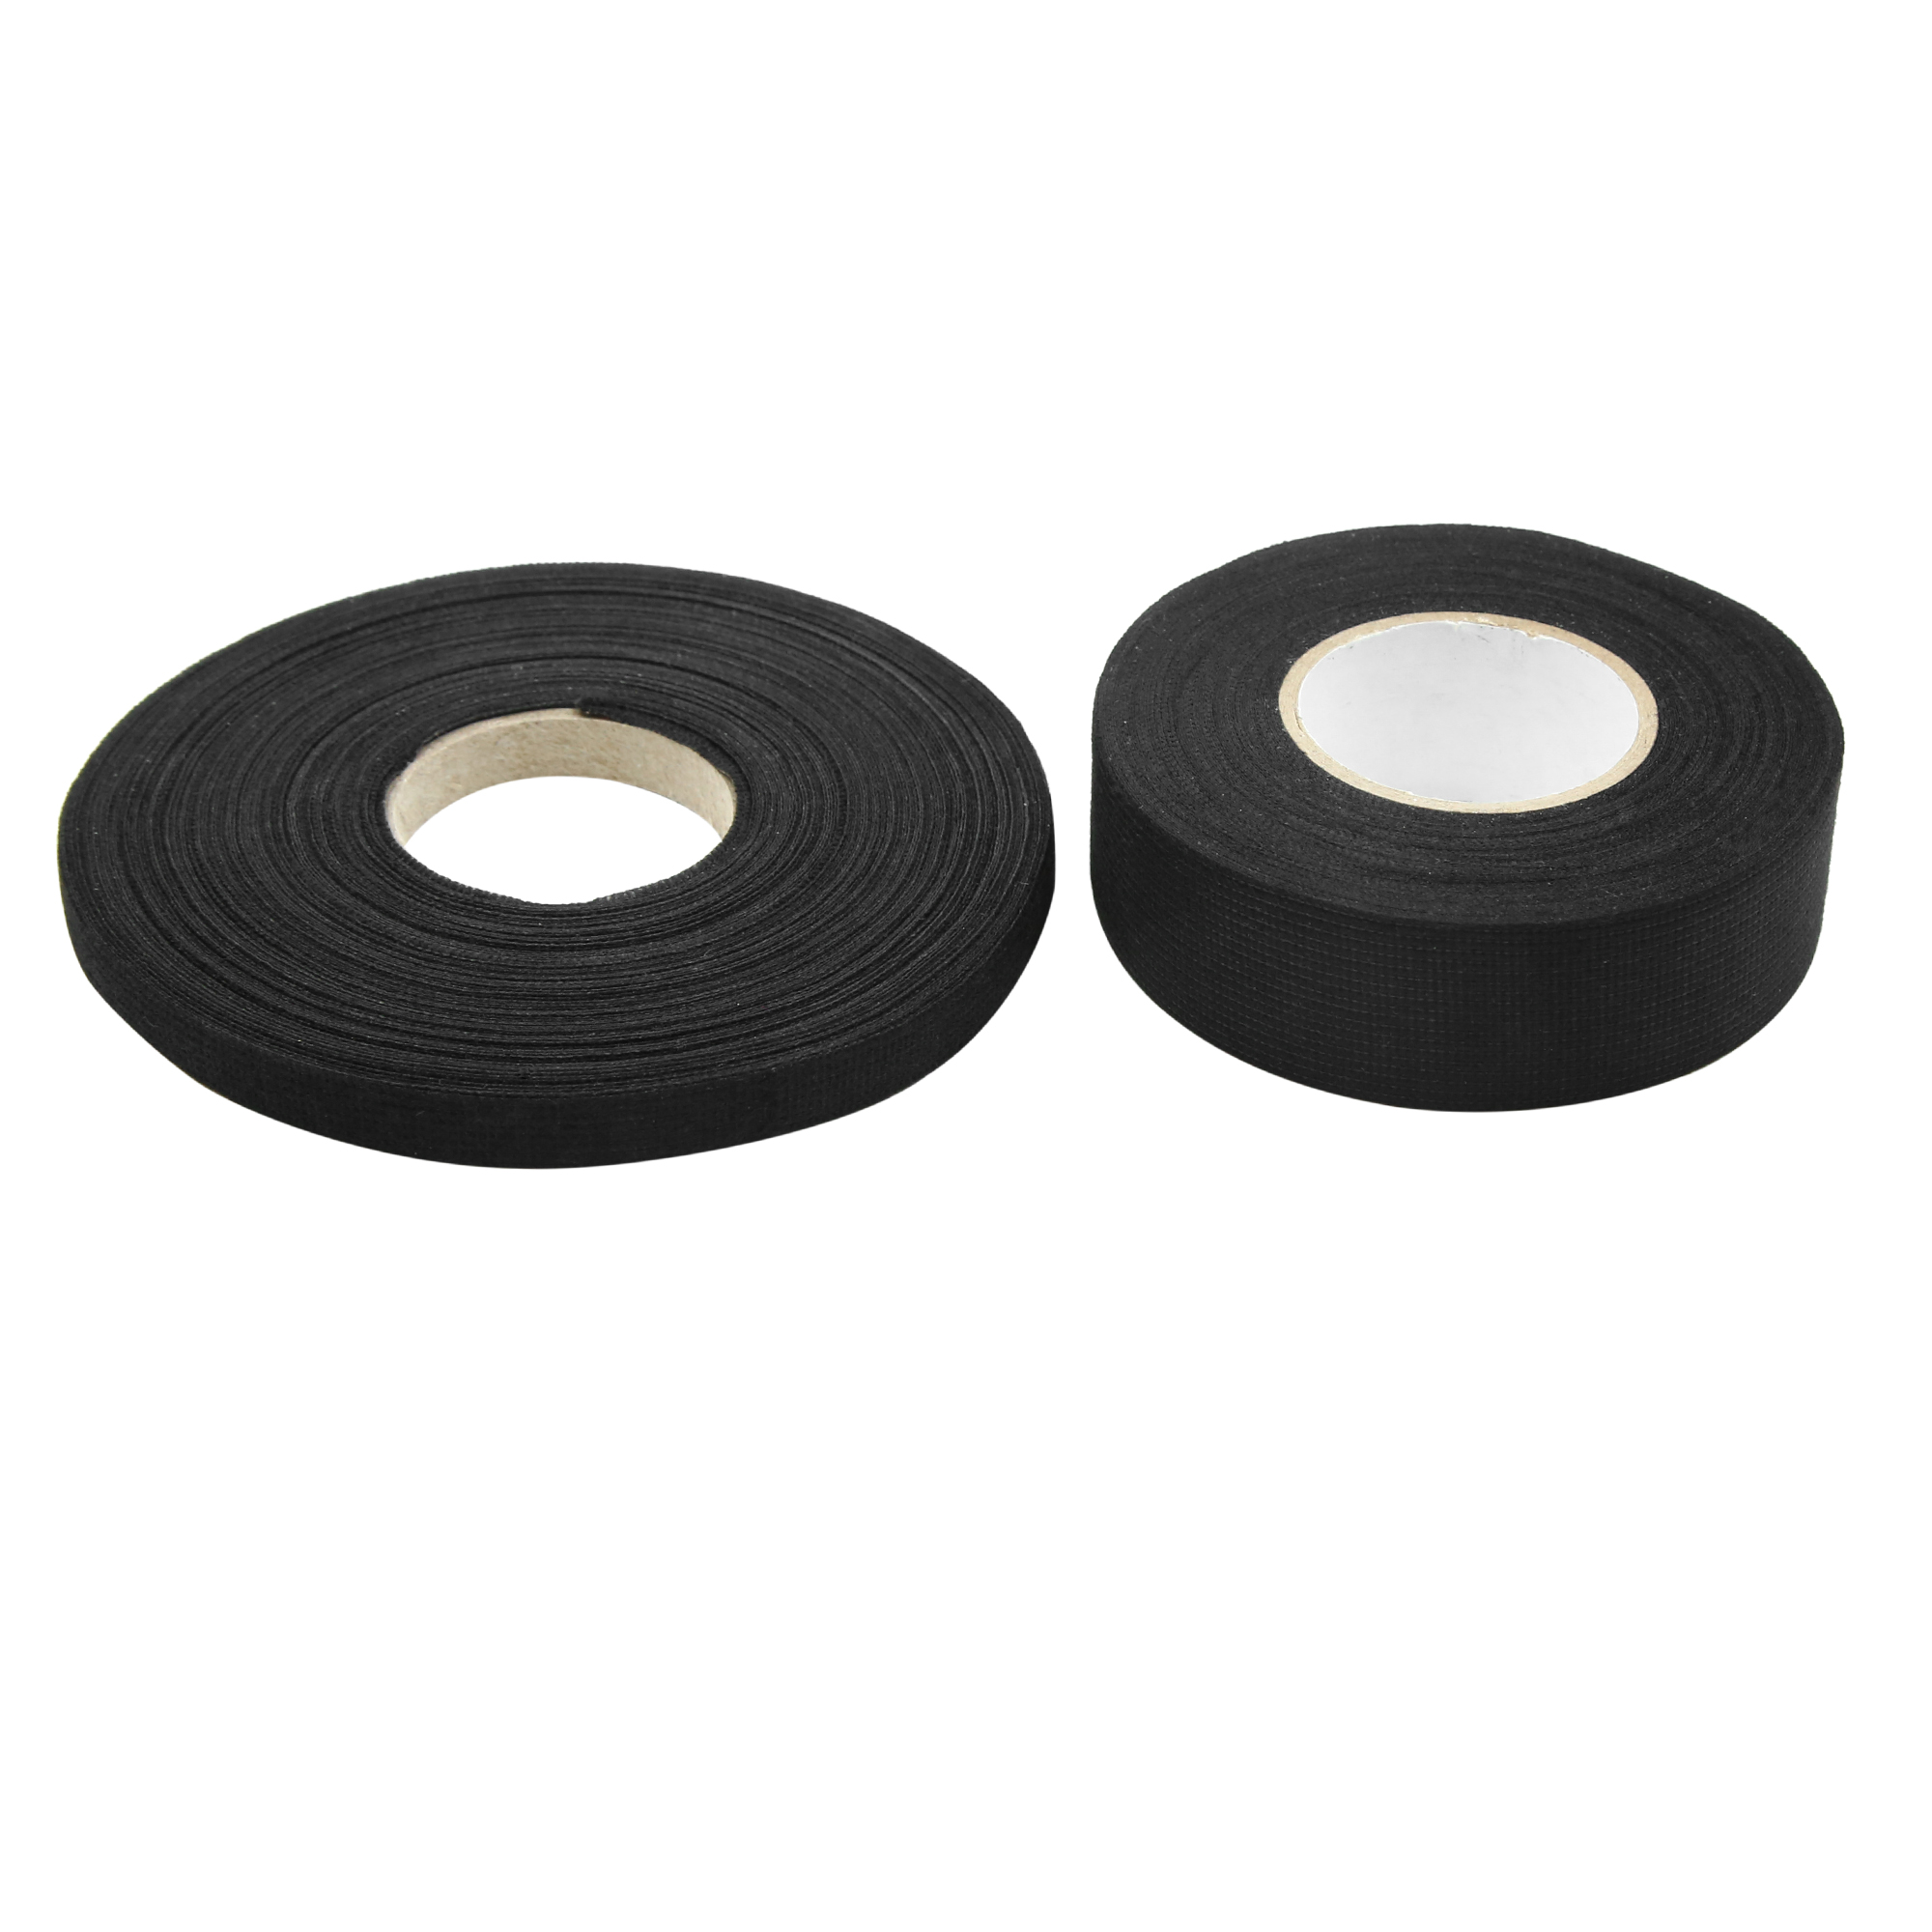 hight resolution of 2 in 1 black universal adhesive fabric cloth auto car wire harness looms tape walmart com